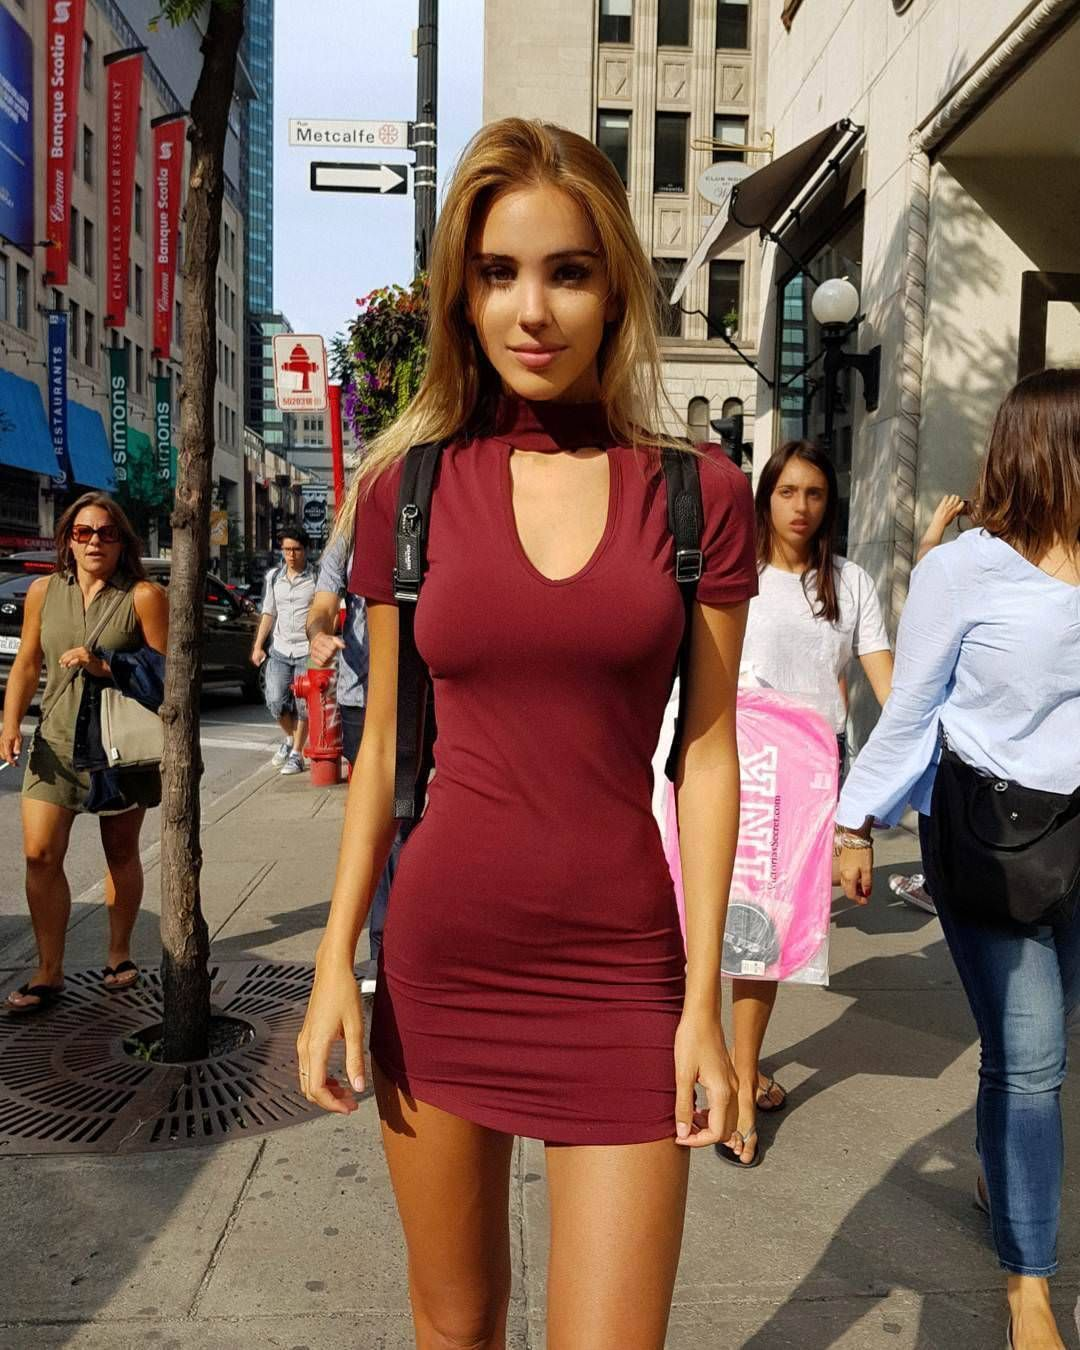 Backpacking in Montréal | Tight red dress, Tight dresses, Mini dress